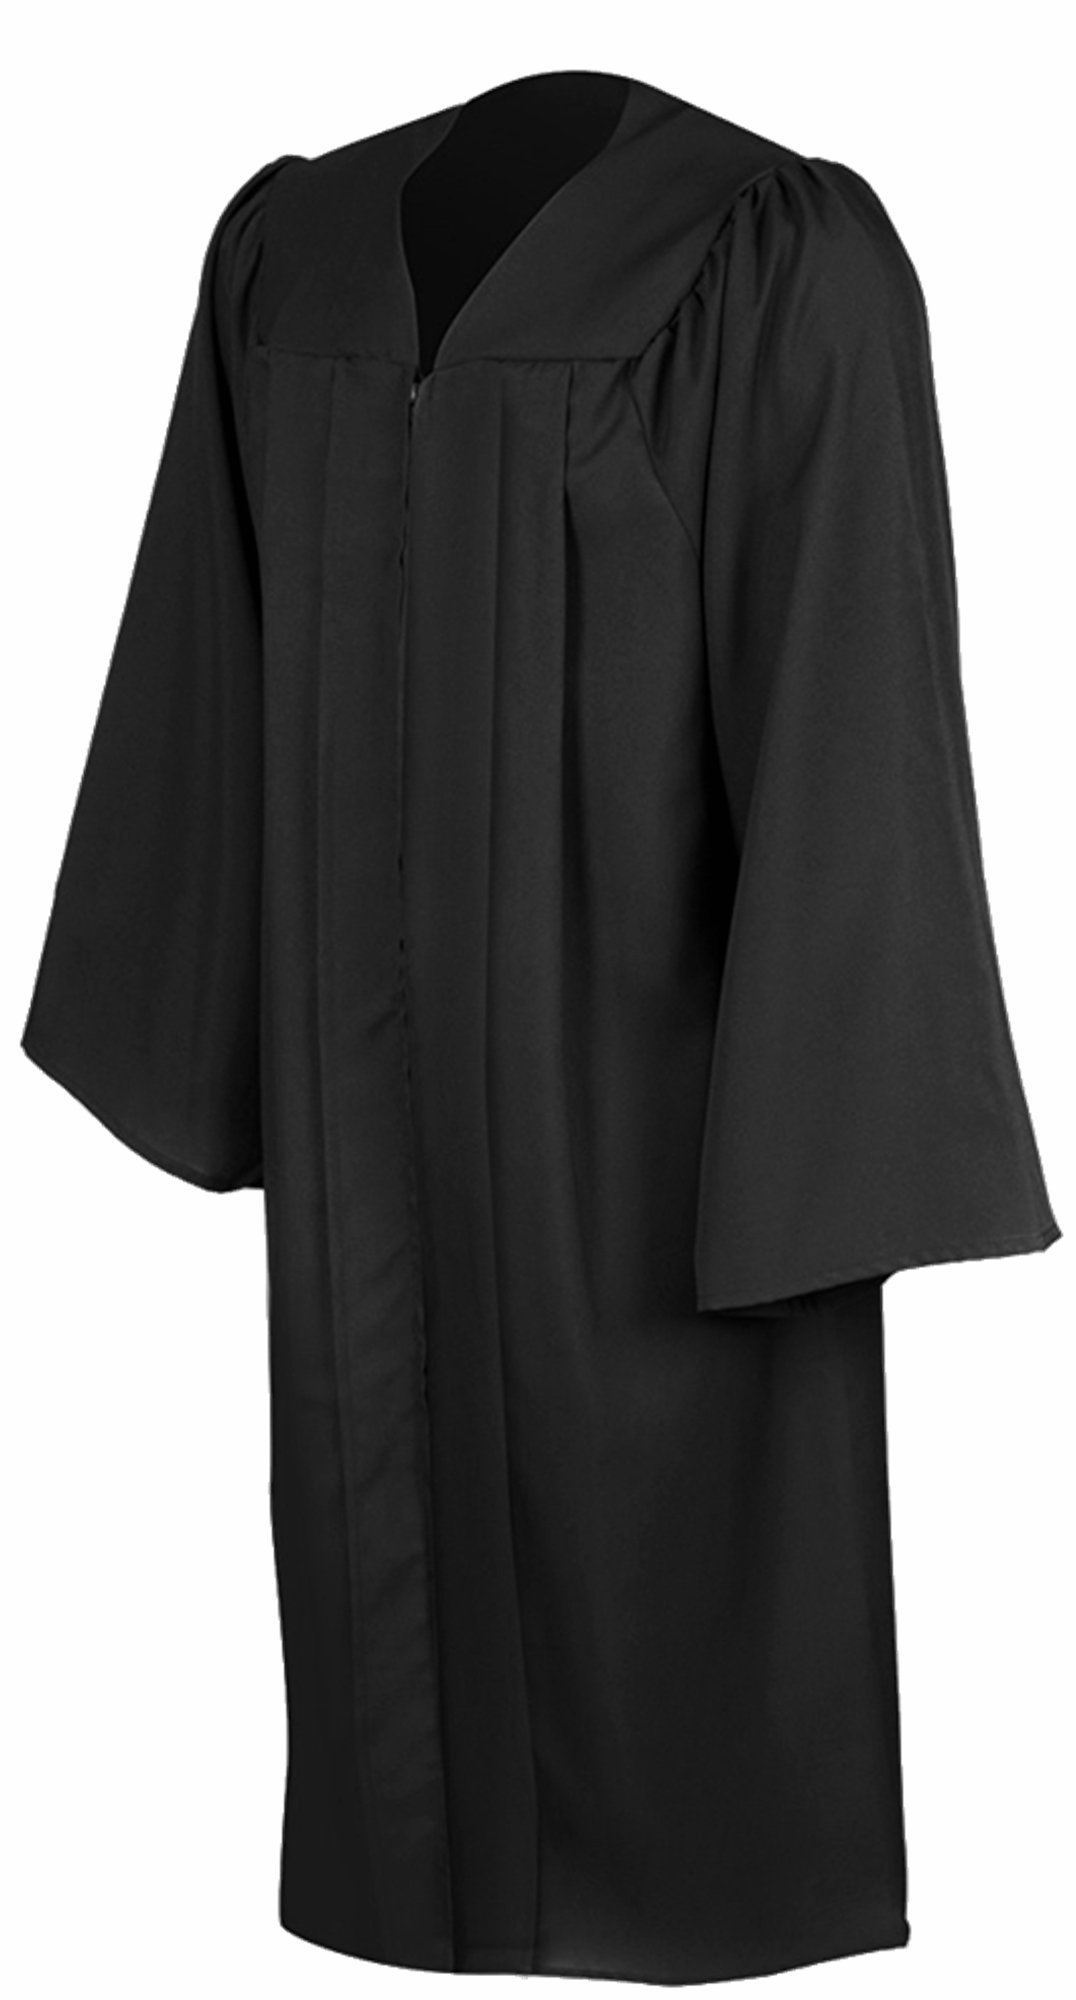 Leishungao Adult Black Choir Robe Matte Finish for Choir Clergy ReligiousWearing Height 5'3''-5'5''